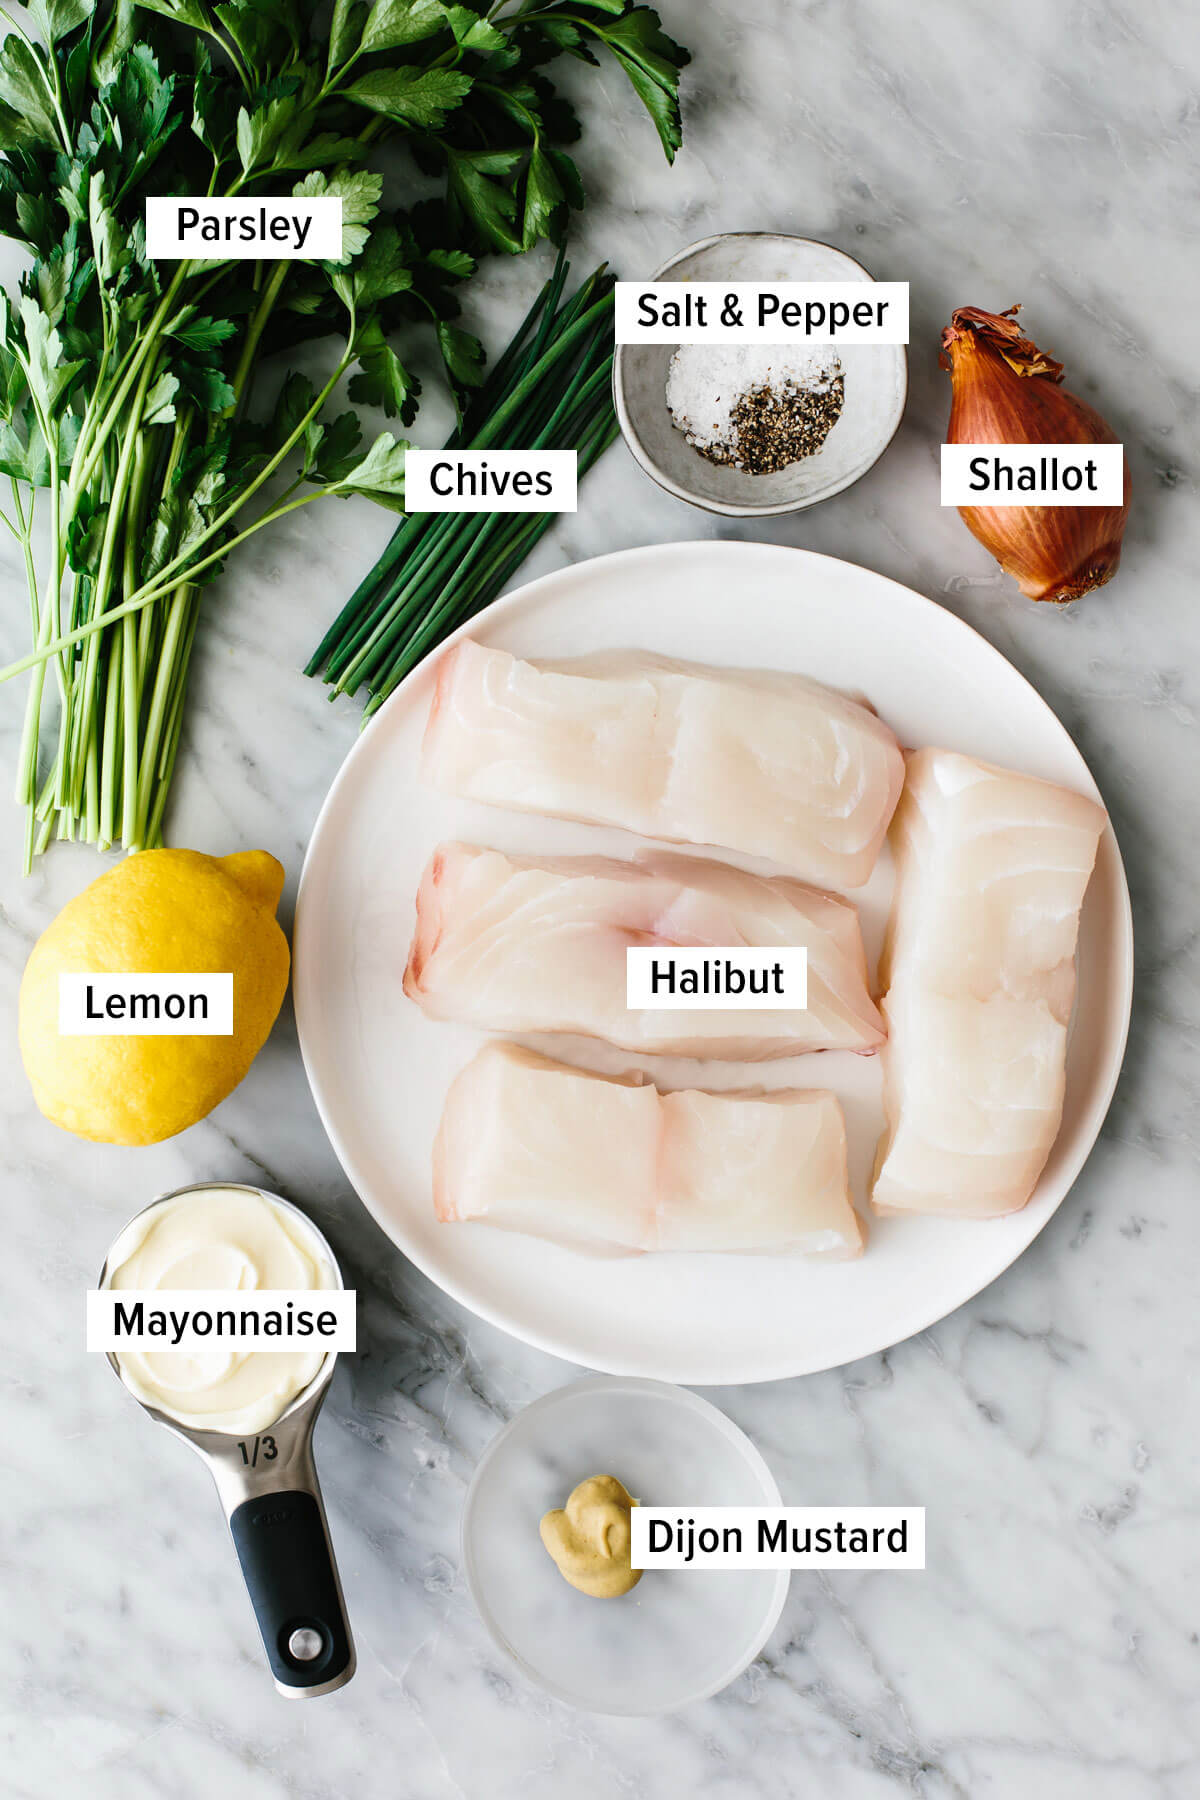 Ingredients for baked halibut on a table